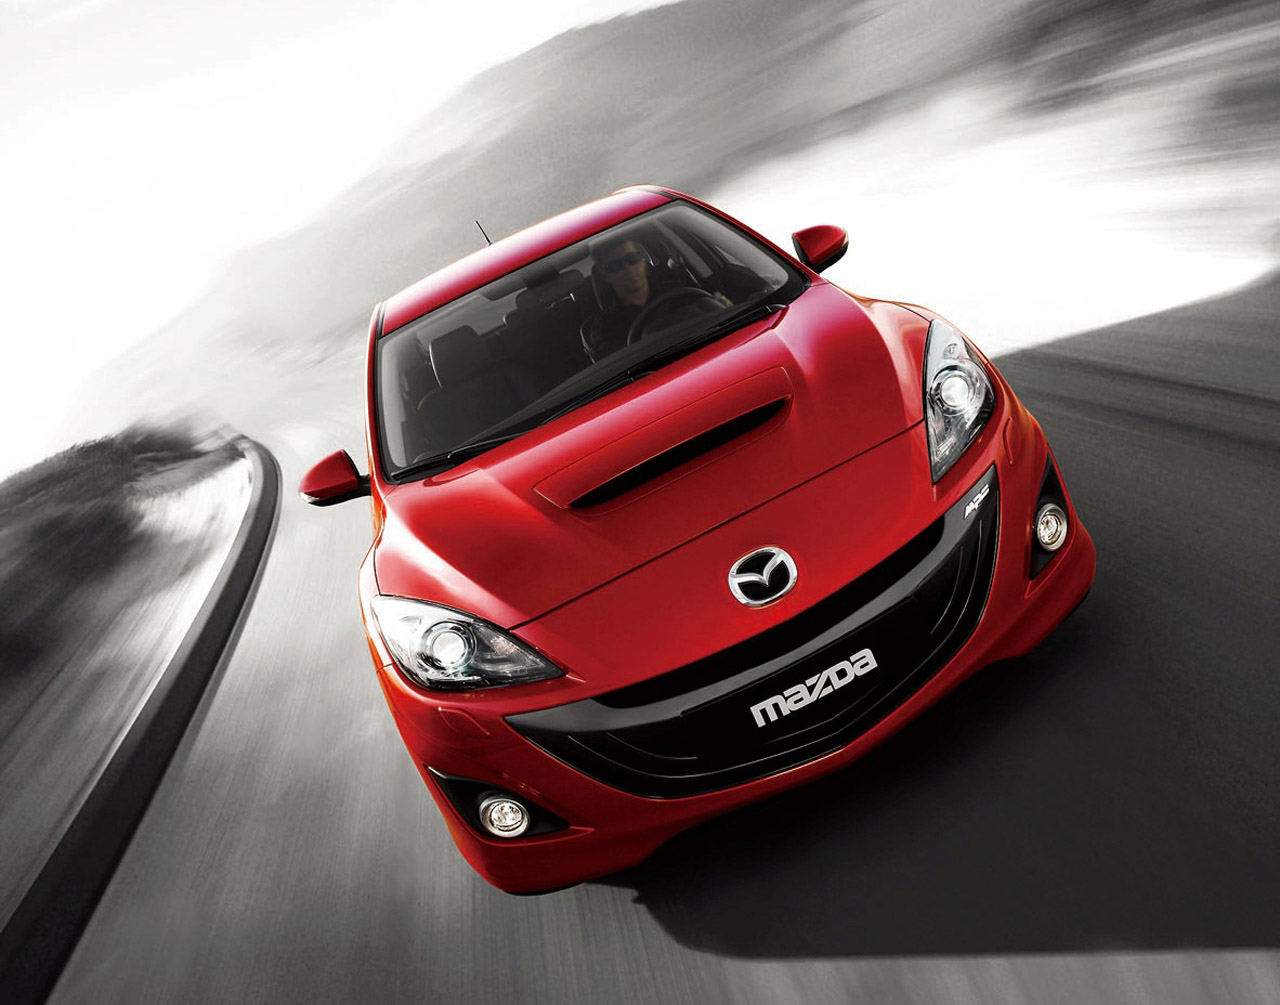 Super car Blog: 2010 Mazda3 MPS / MazdaSpeed3 Wallpaper